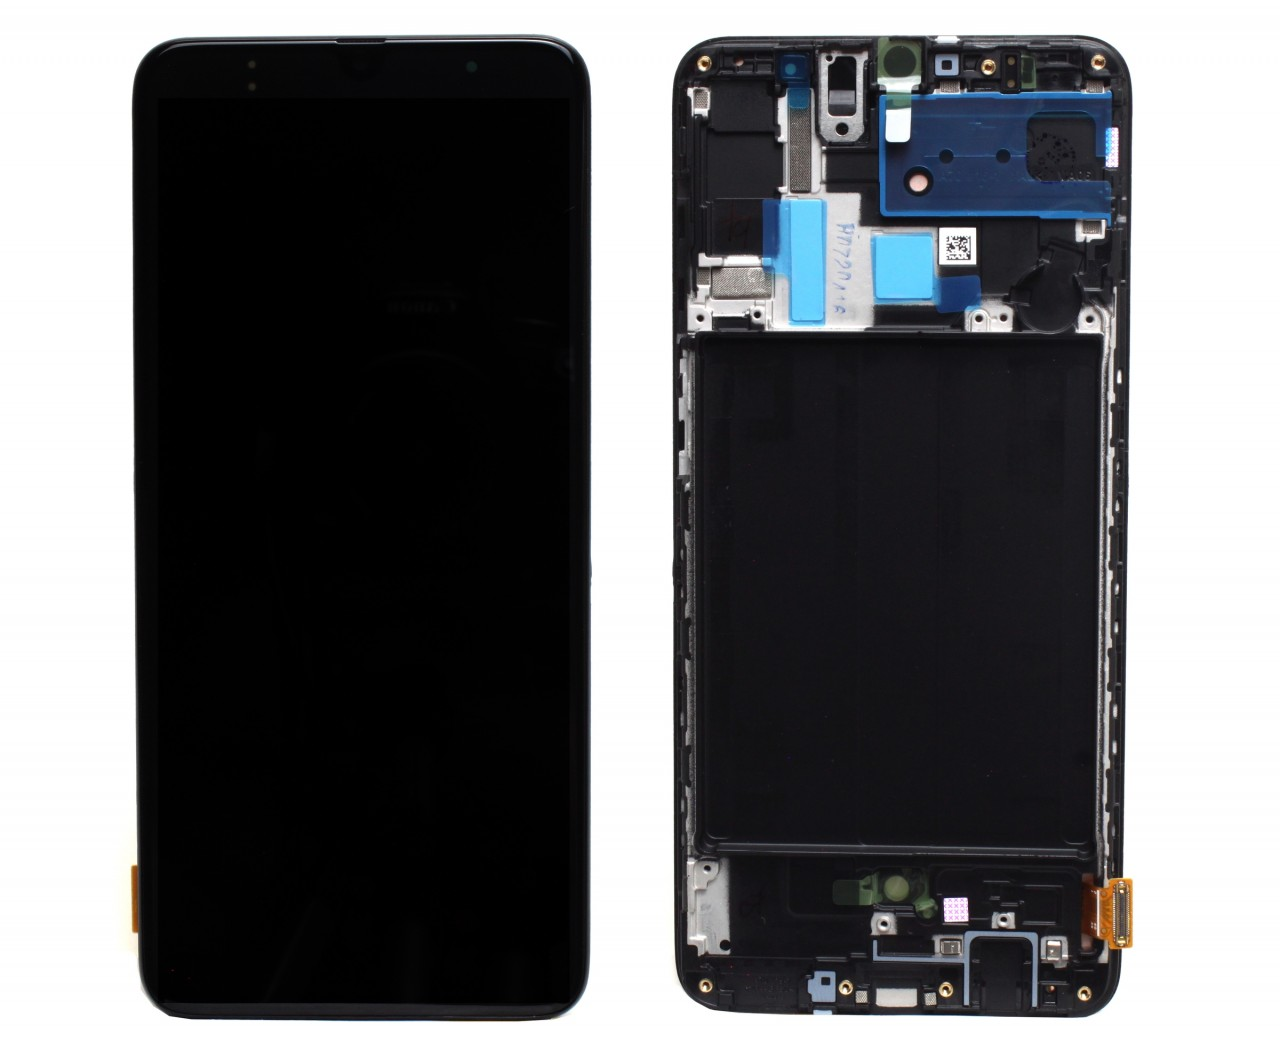 Display Samsung Galaxy A70 A705 Display Original Black Negru